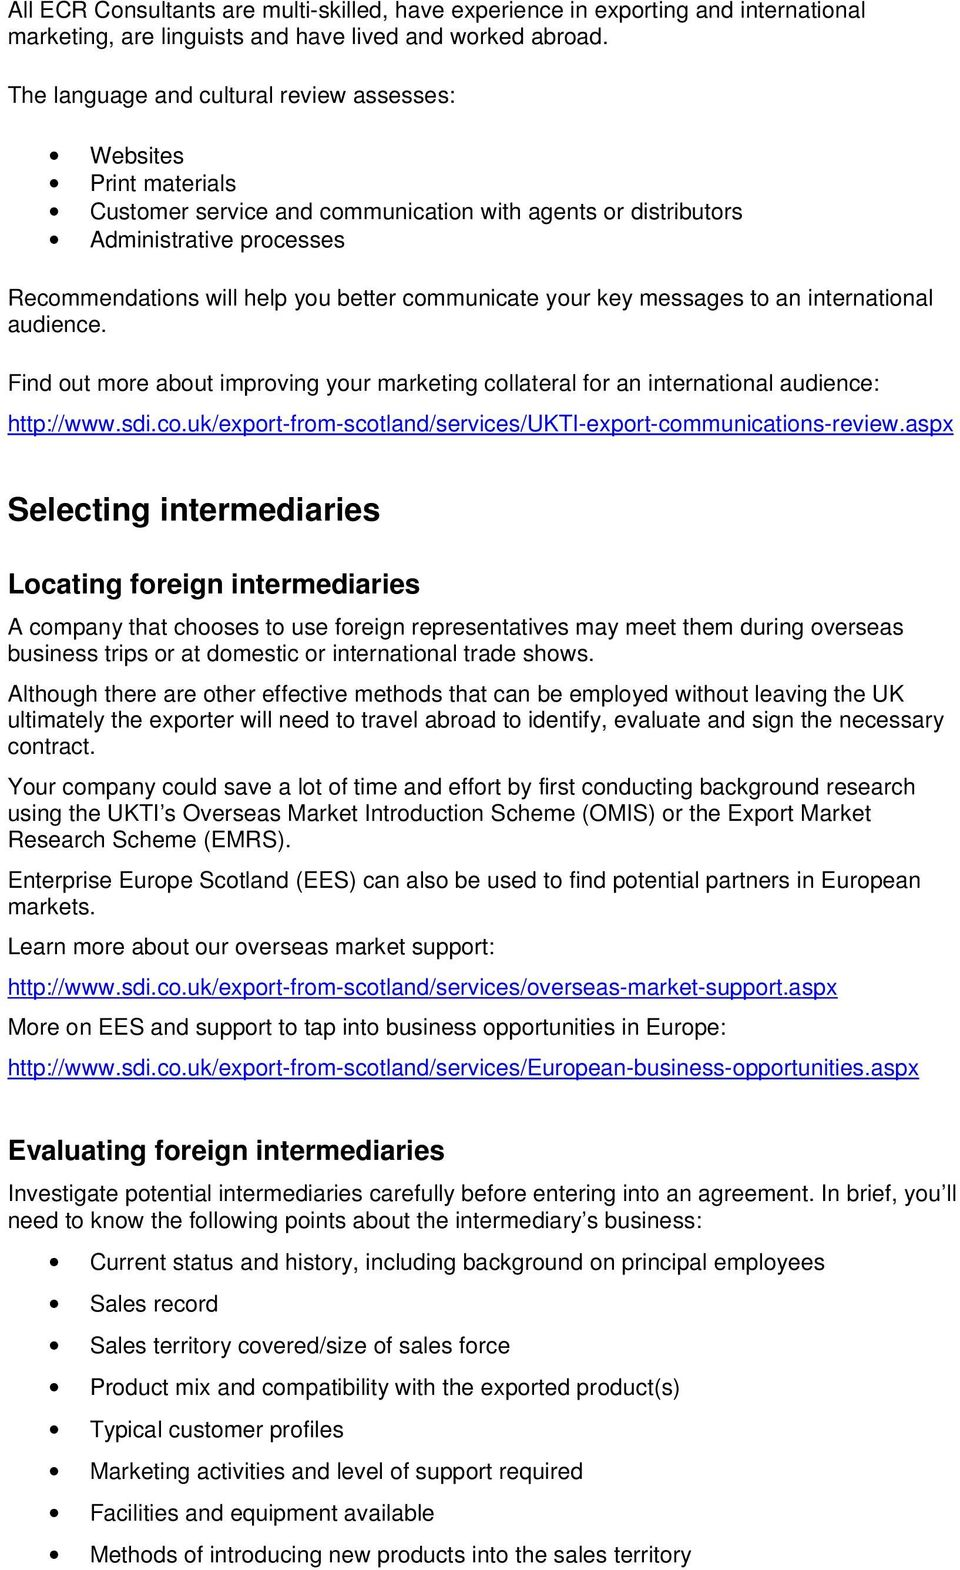 communicate your key messages to an international audience. Find out more about improving your marketing collateral for an international audience: http://www.sdi.co.uk/export-from-scotland/services/ukti-export-communications-review.